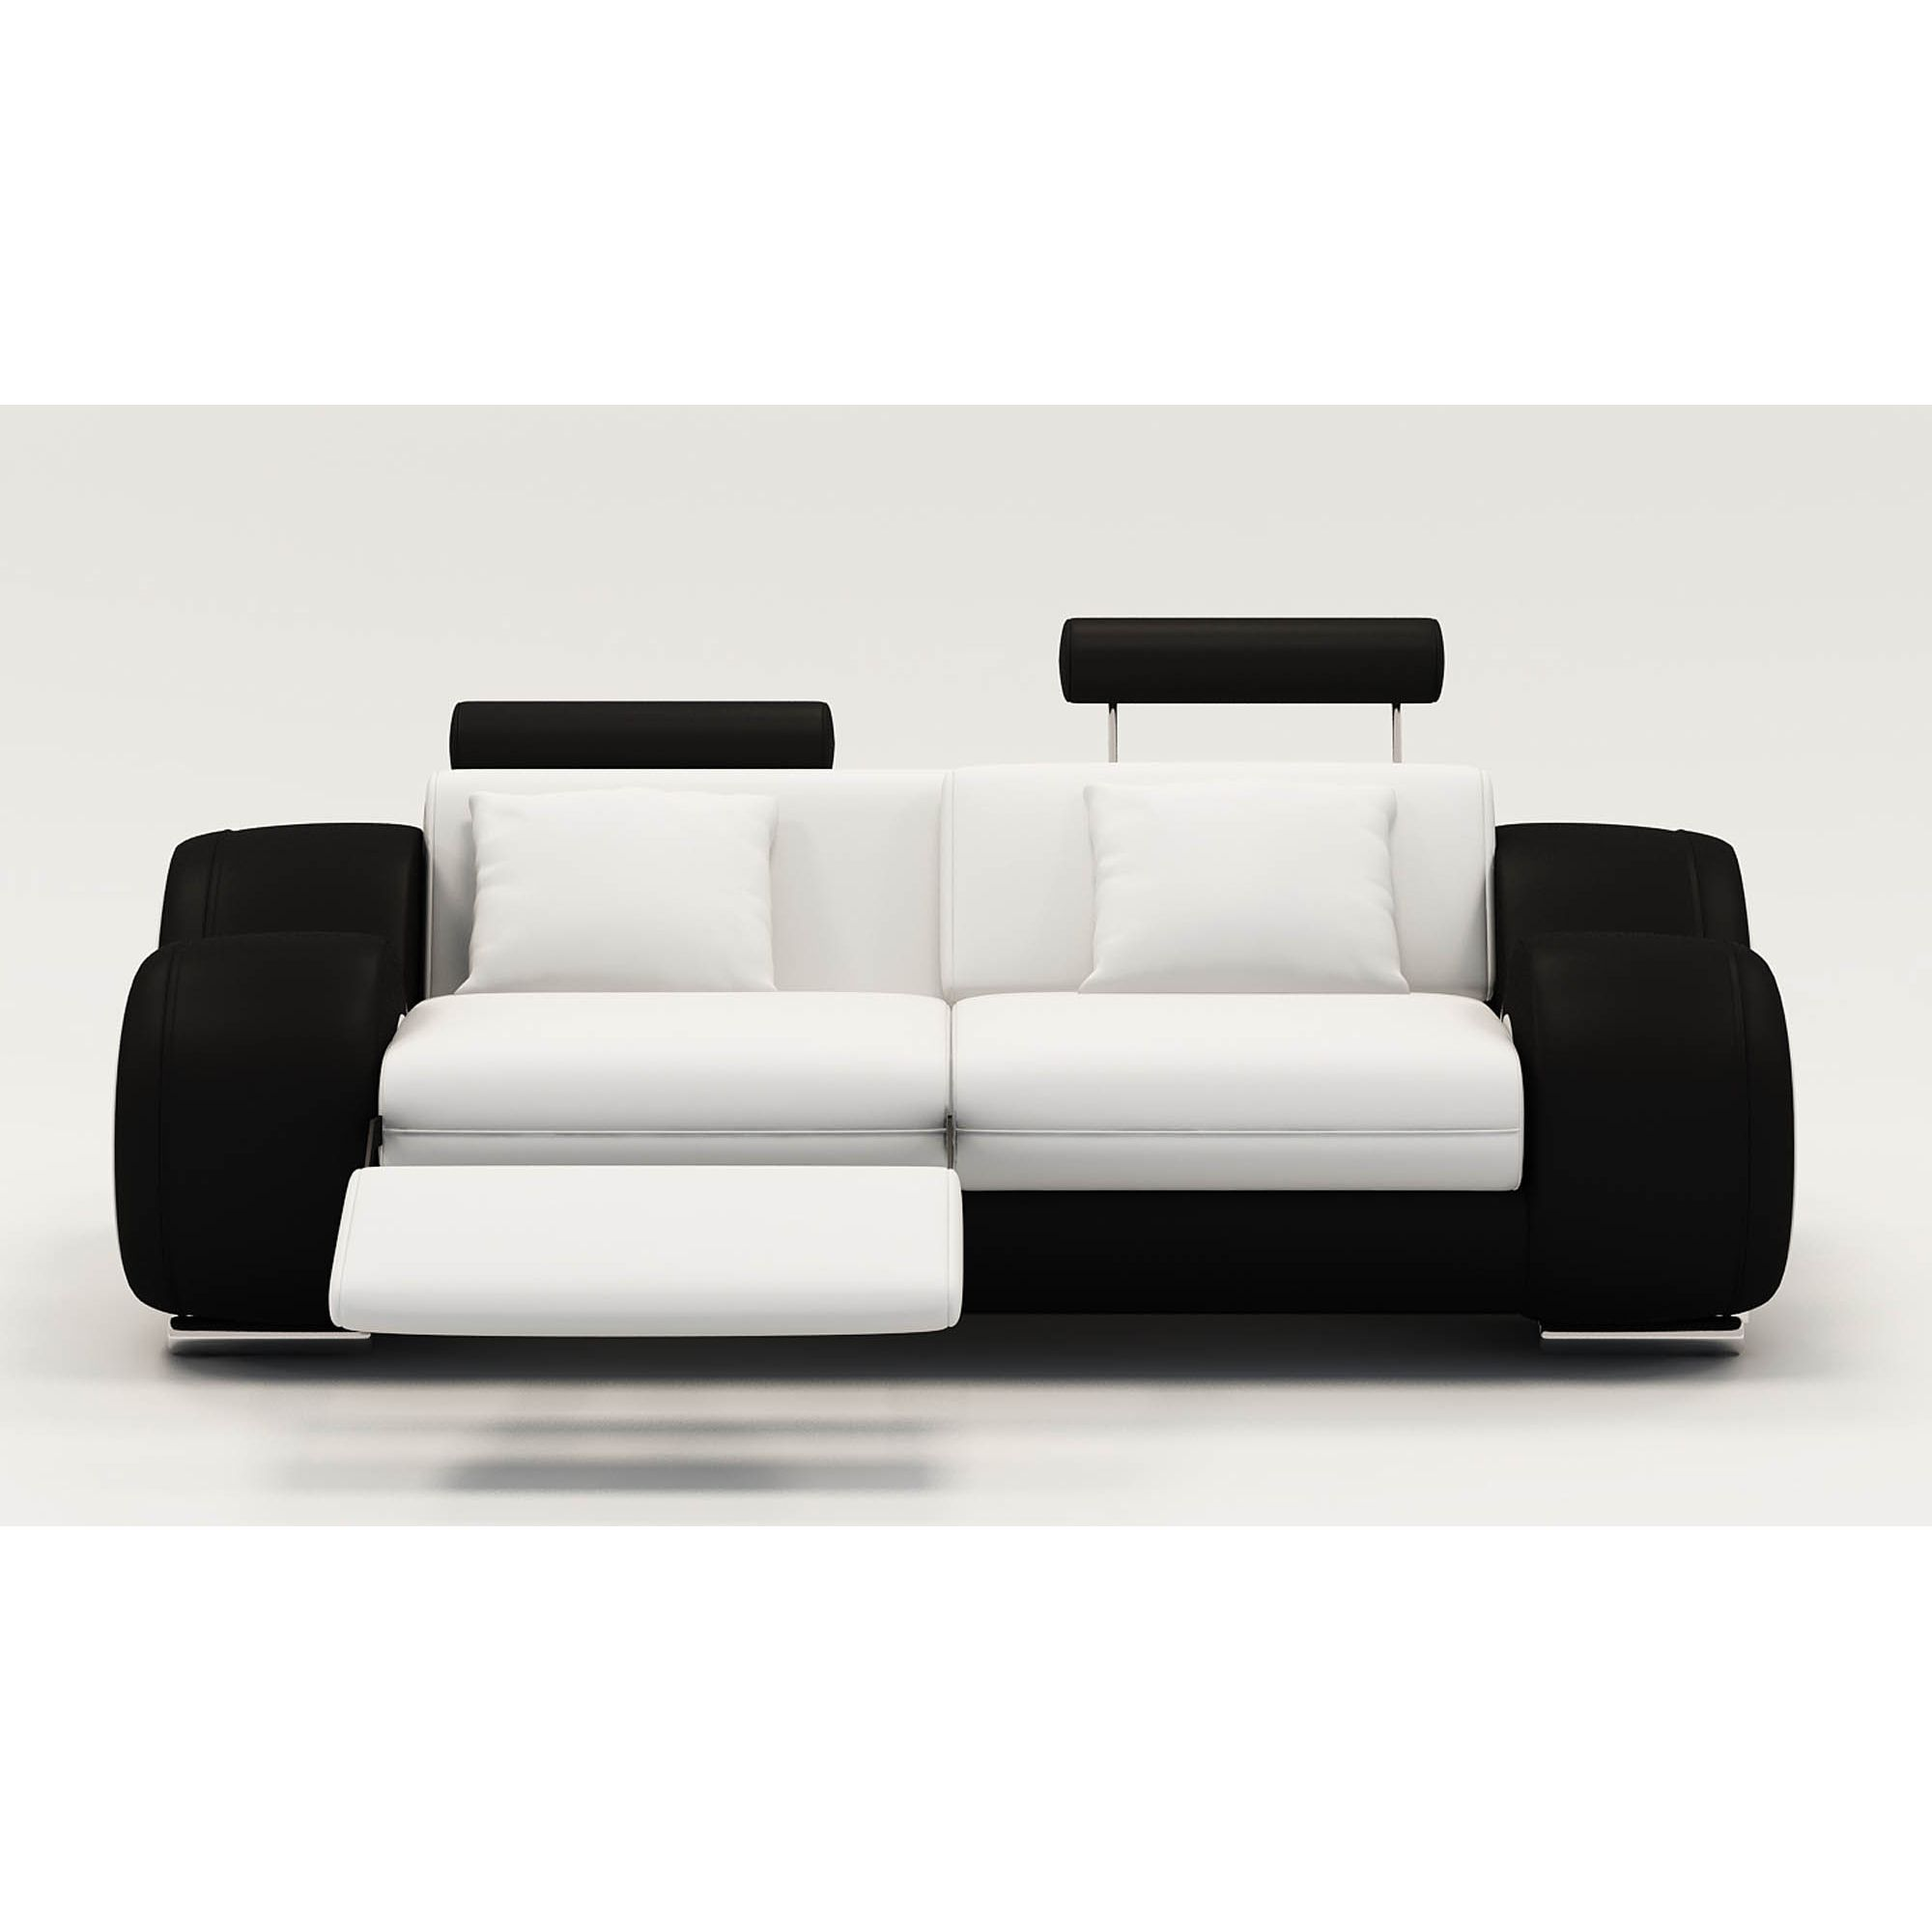 Deco in paris canape 2 places design relax oslo en cuir - Canape 2 places relax ...